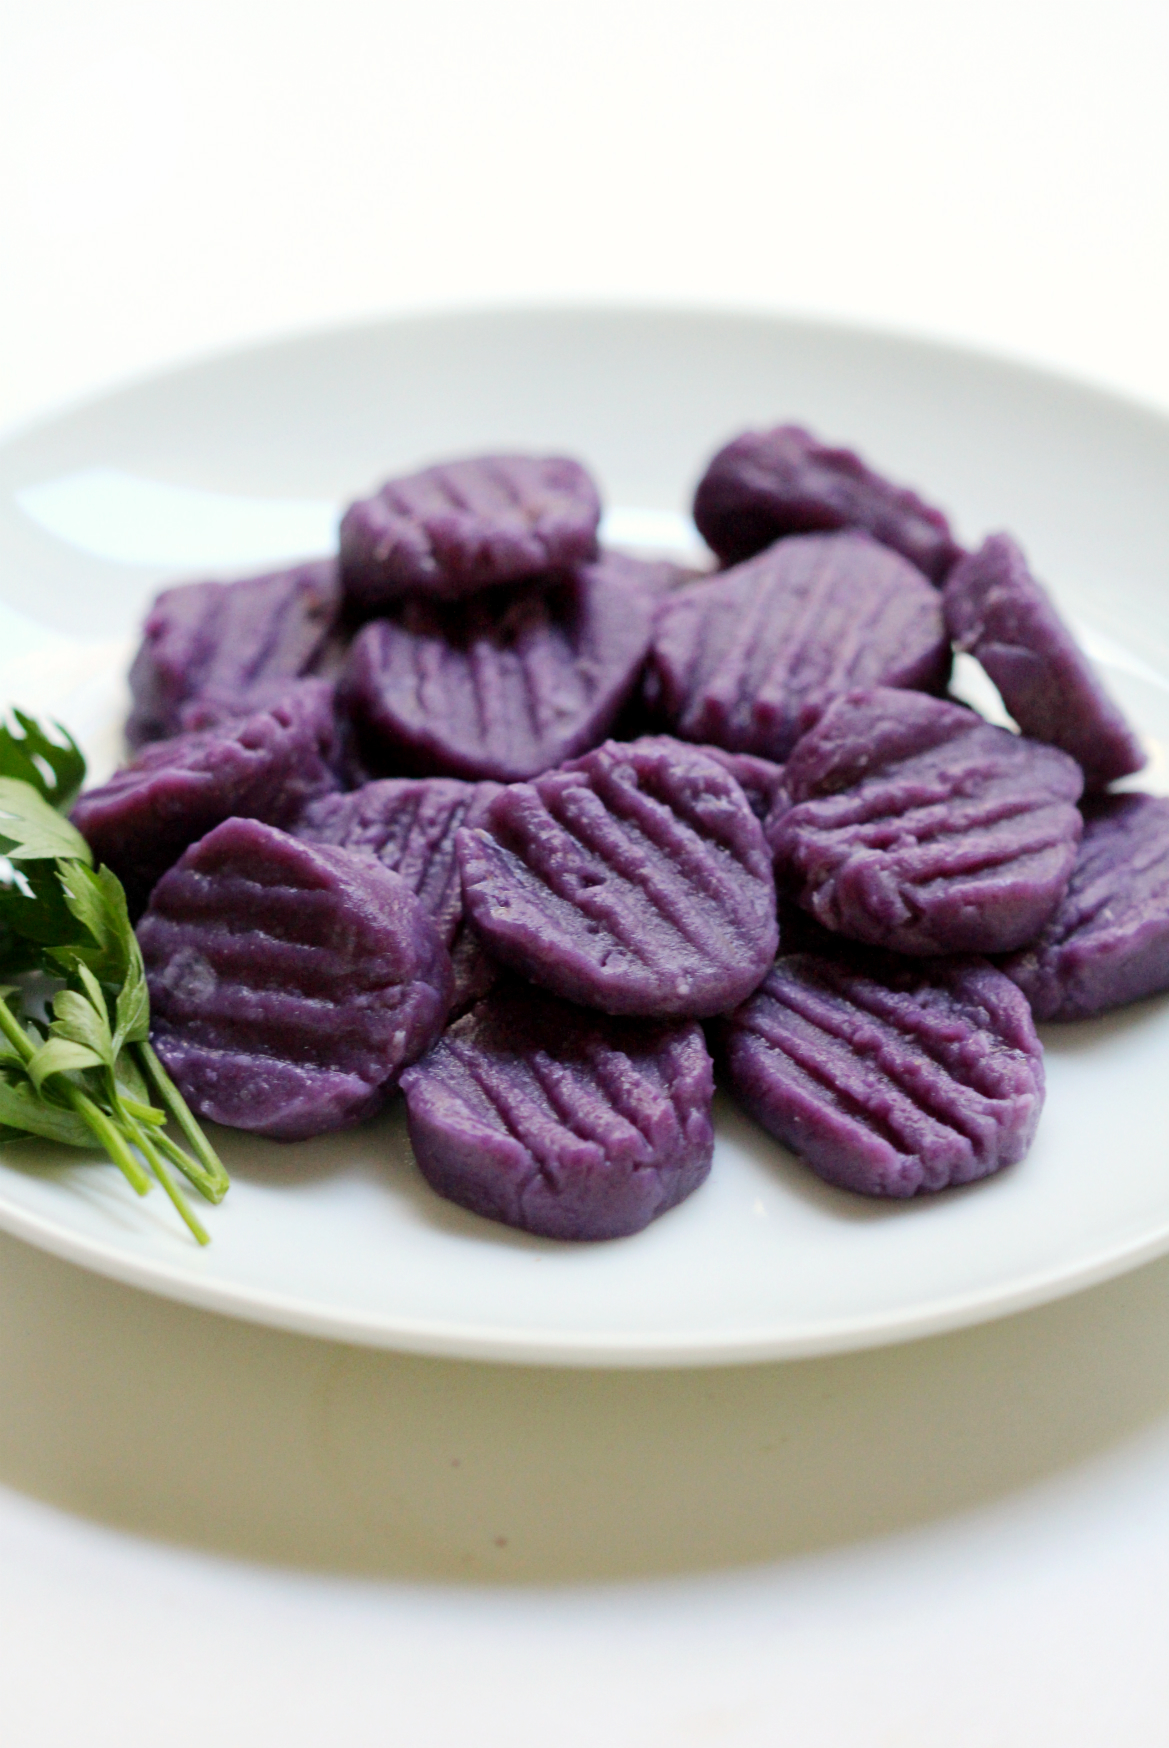 Purple Sweet Potato Gnocchi + Tahini Parsley Sauce | Strength and Sunshine @RebeccaGF666 You won't believe how easy homemade gnocchi can be! With the stunning color of purple sweet potatoes and the taste of creamy tahini with parsley and garlic, this gluten-free, vegan, nut-free, and paleo recipe will blow everyone's mind! An elegant dinner or date night dish!